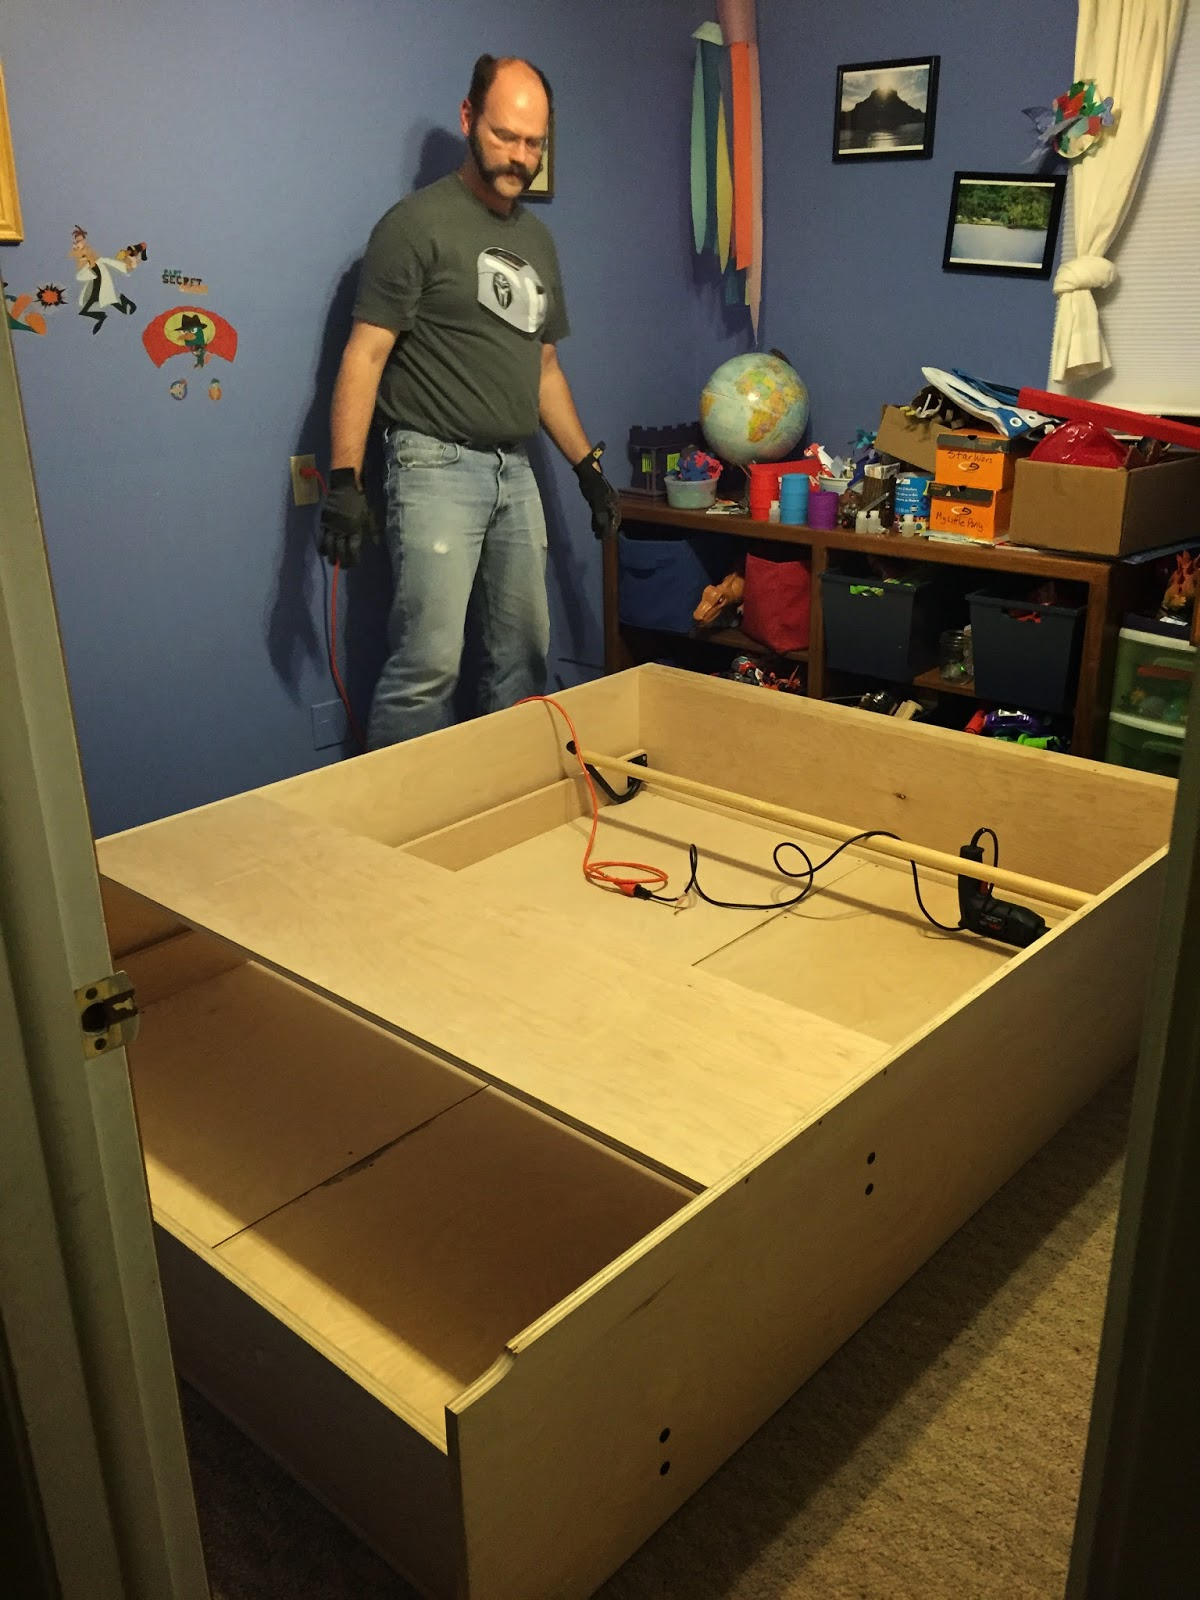 Chris standing next to the Murphy bed and frame while assembling it in the playroom guest room.